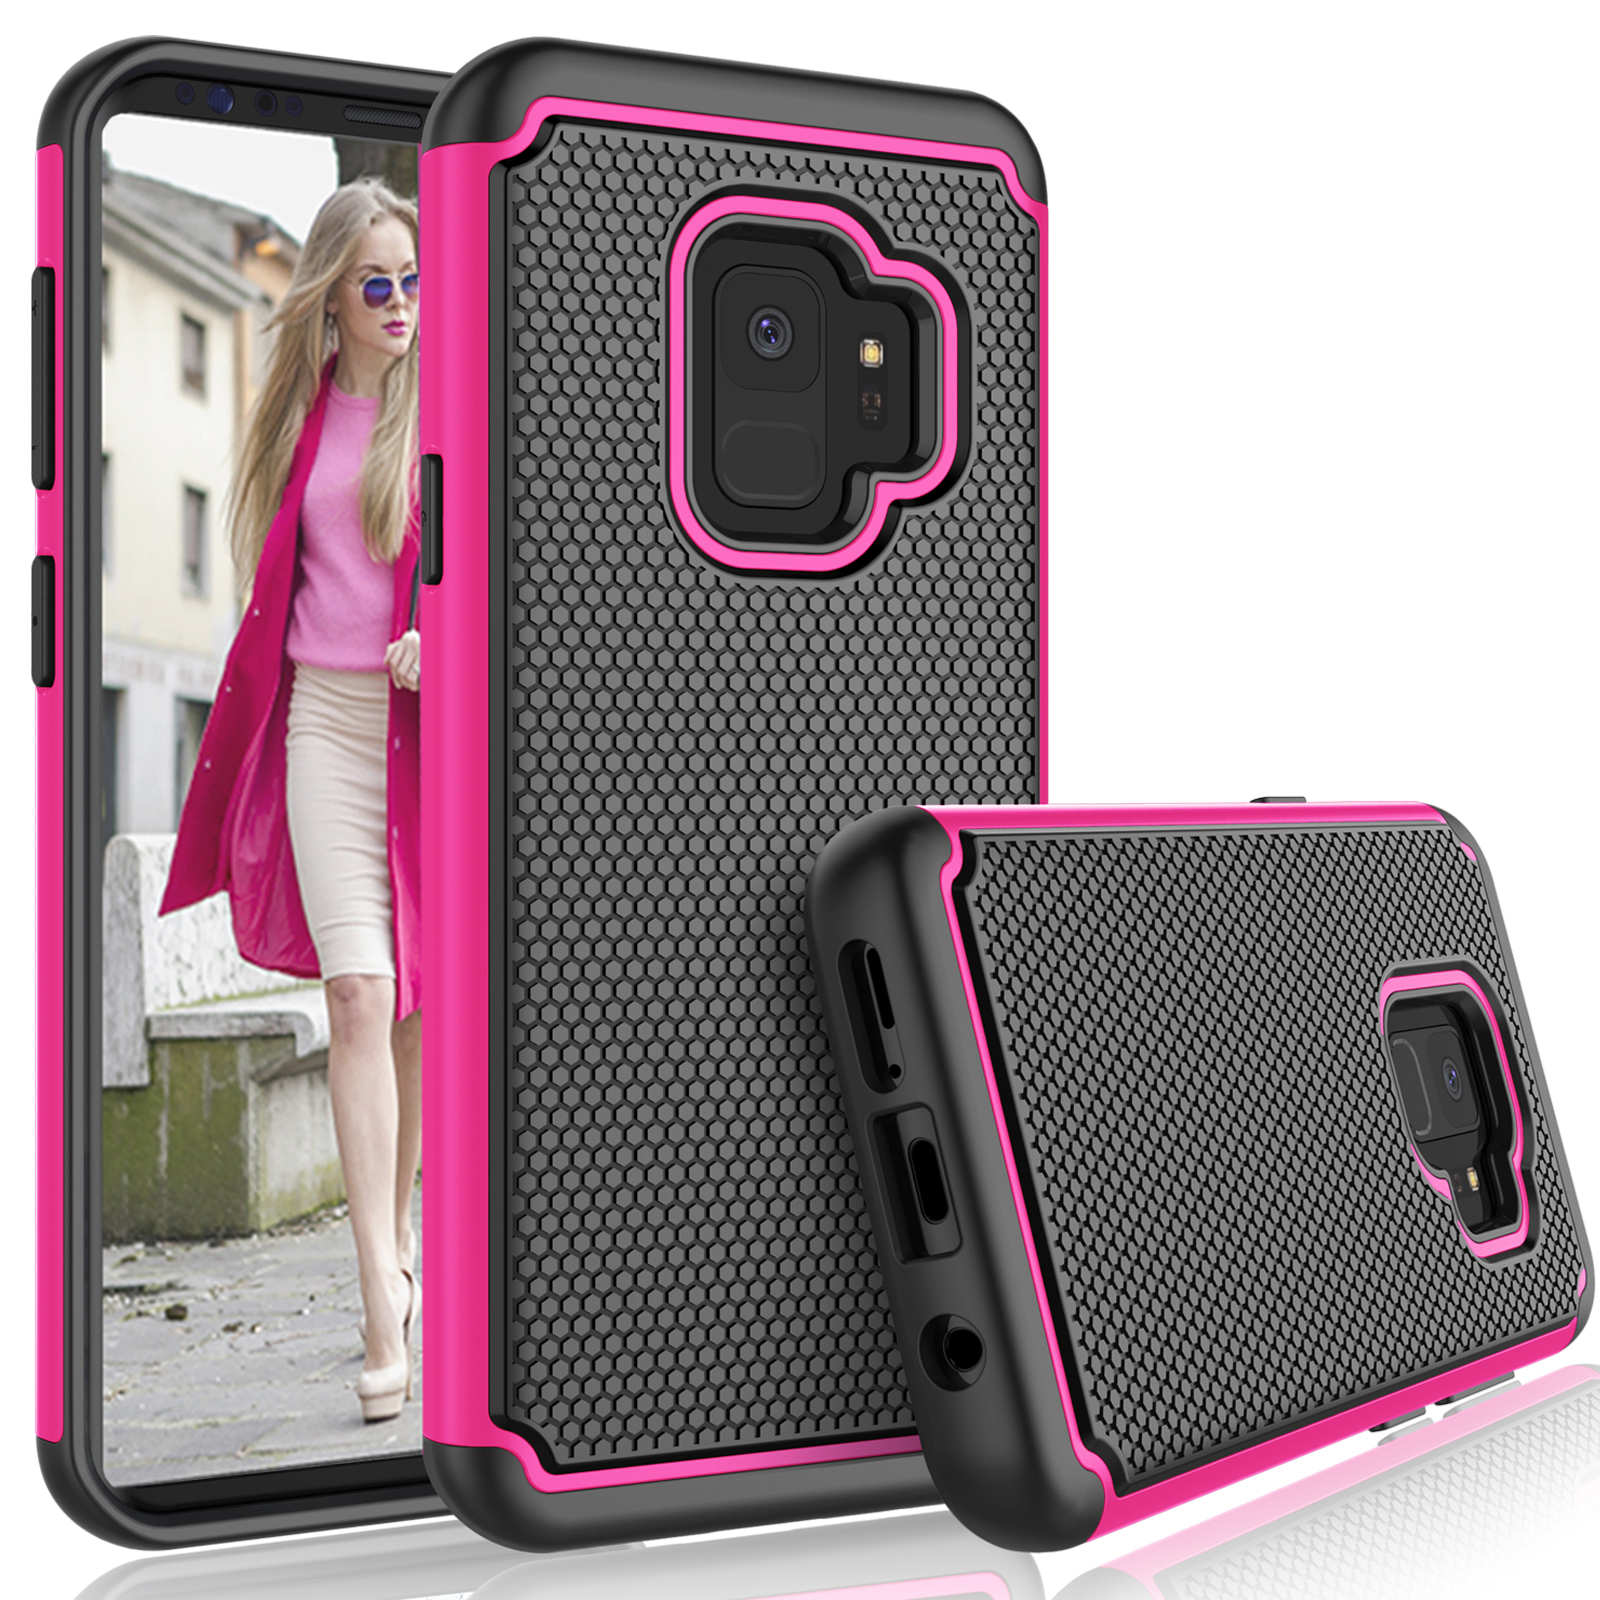 Galaxy S9 Case, Samsung Galaxy S9 Case For Girls, Tekcoo [Tmajor] Shock Absorbing [Rose] Hybrid Rubber Silicone & Plastic Scratch Resistant Rugged Solid Bumper Grip Cute Sturdy Hard Cases Cover